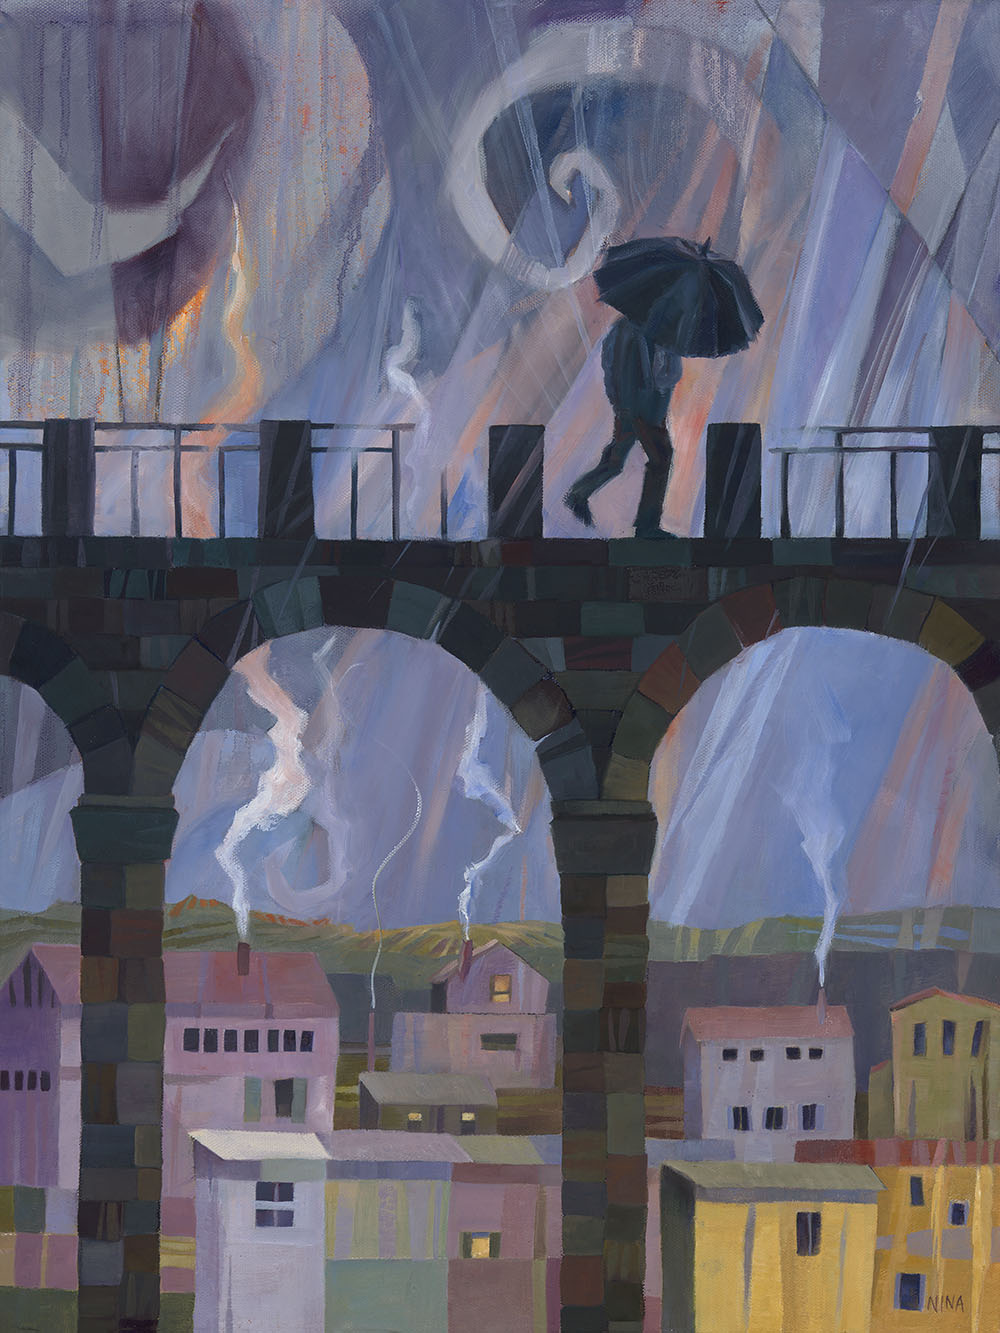 Painting of a figure crossing a bridge on a rainy night.